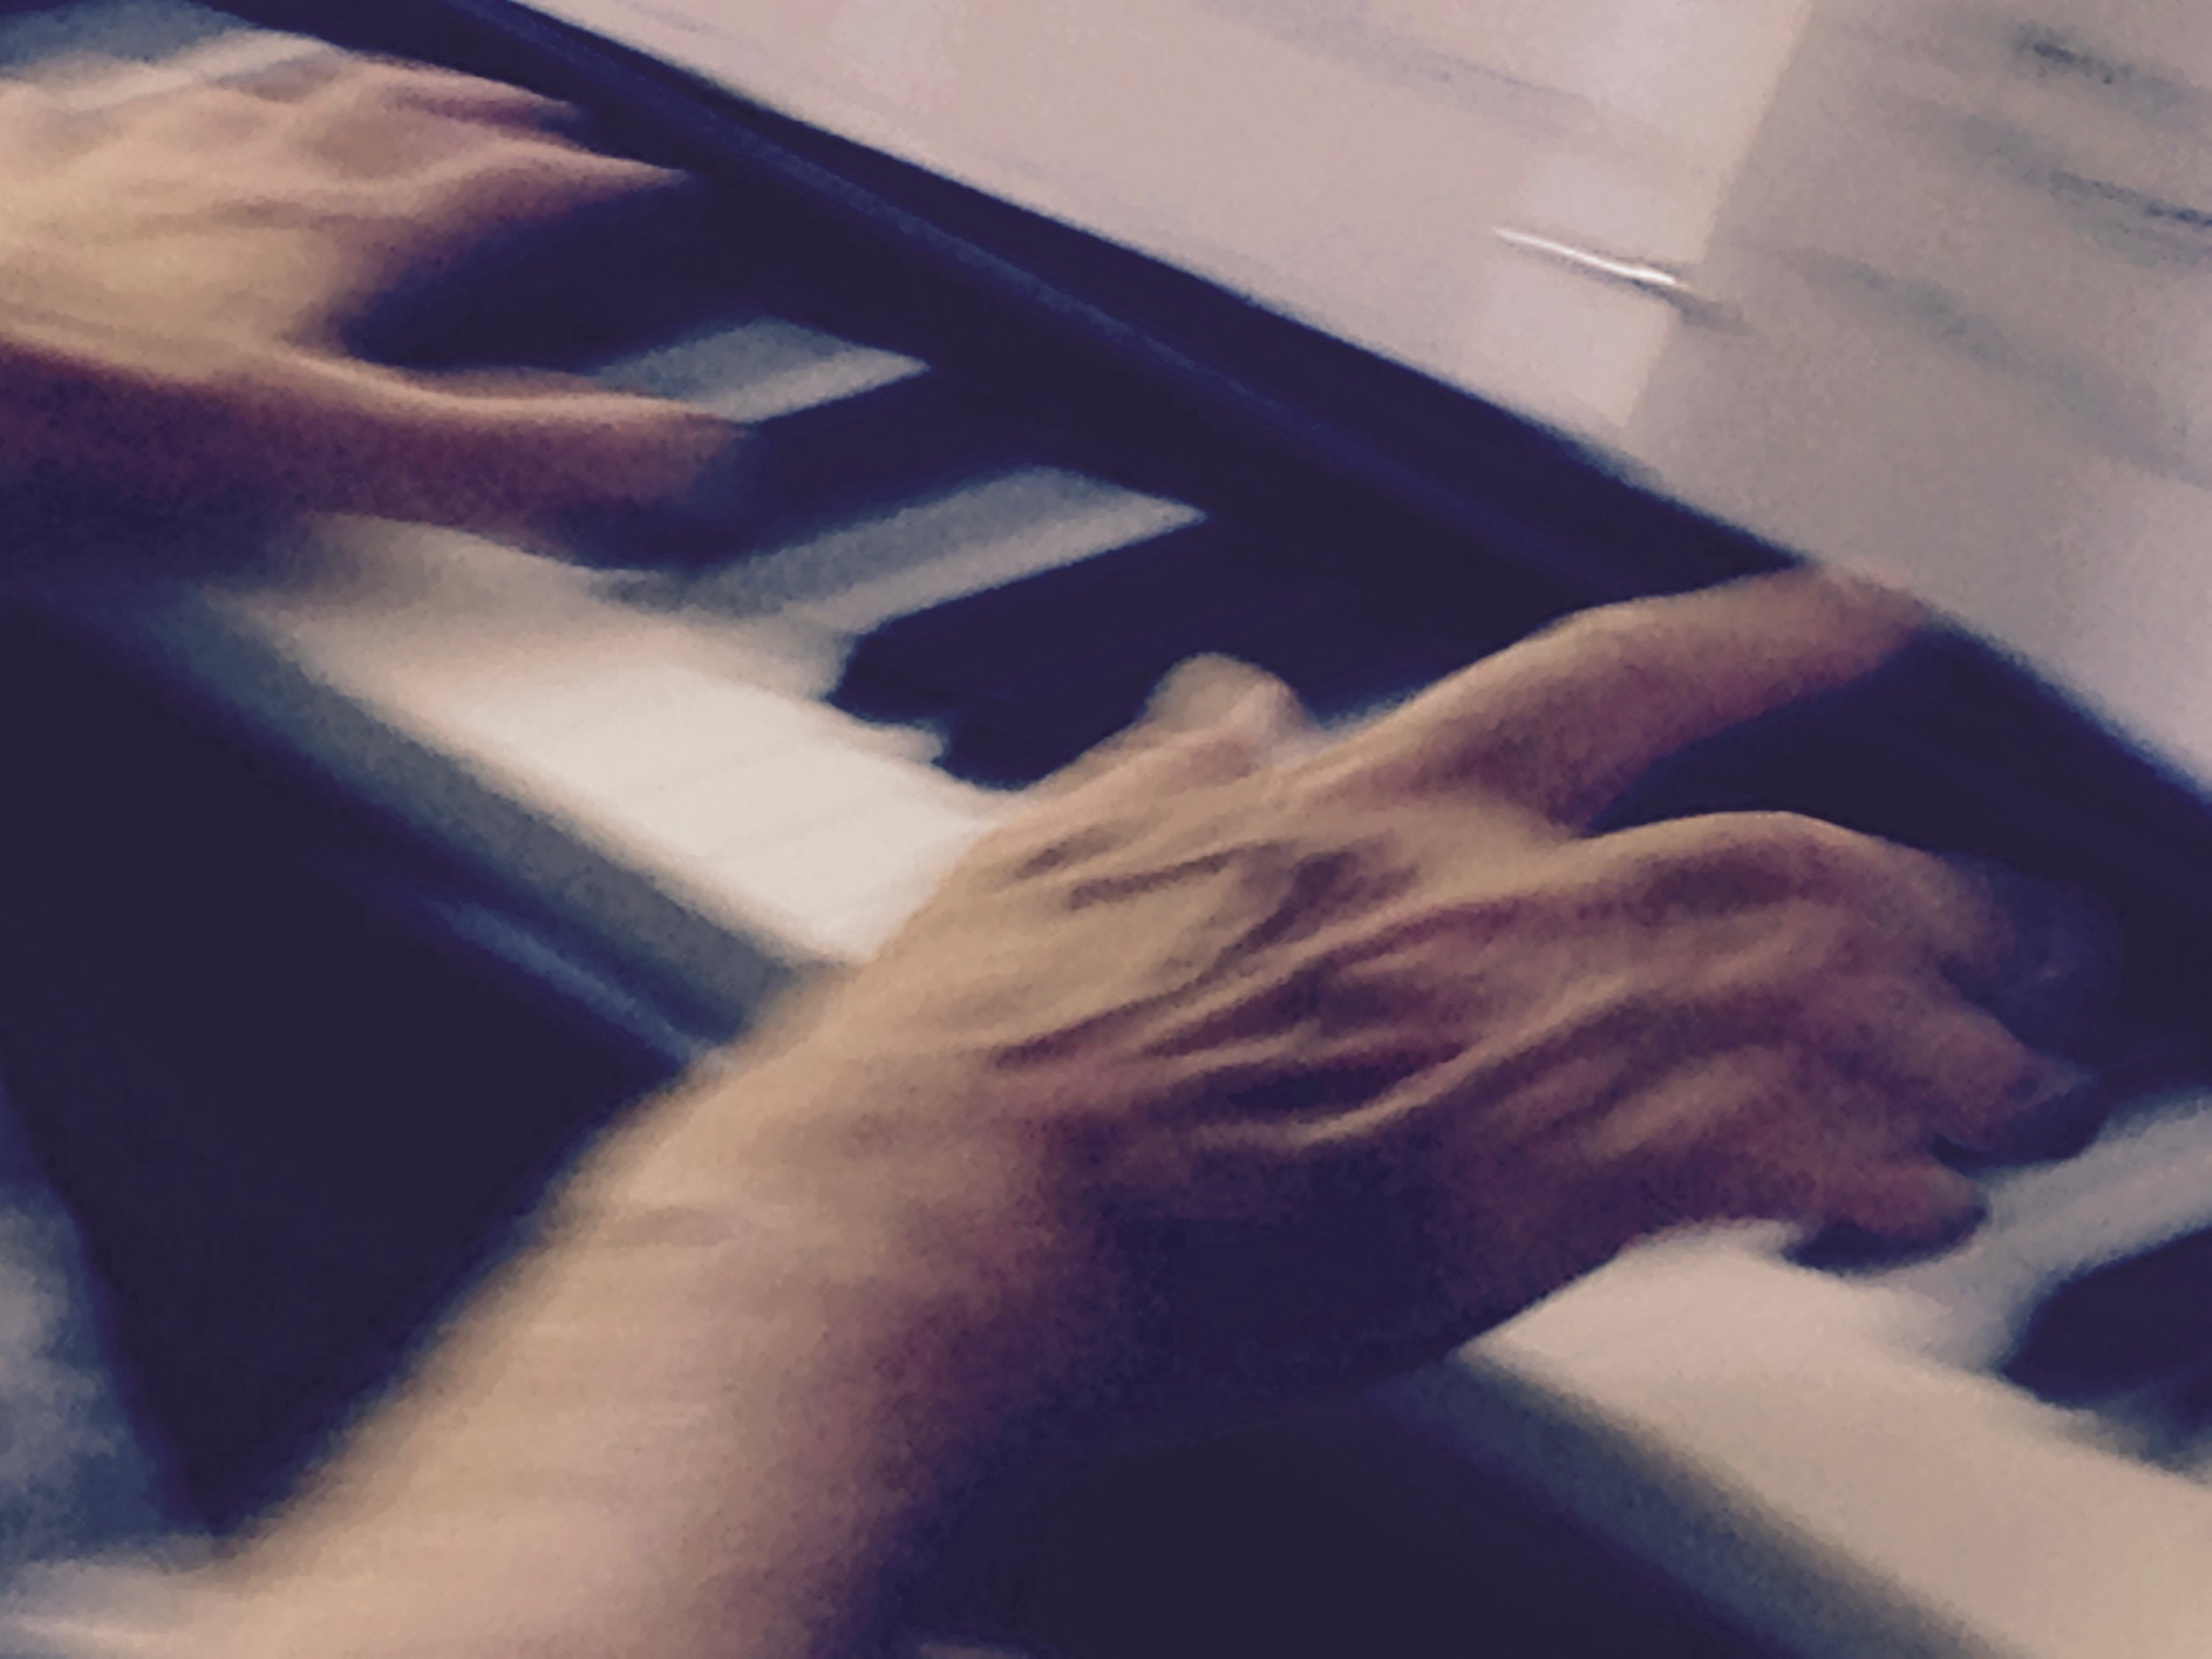 hands on piano